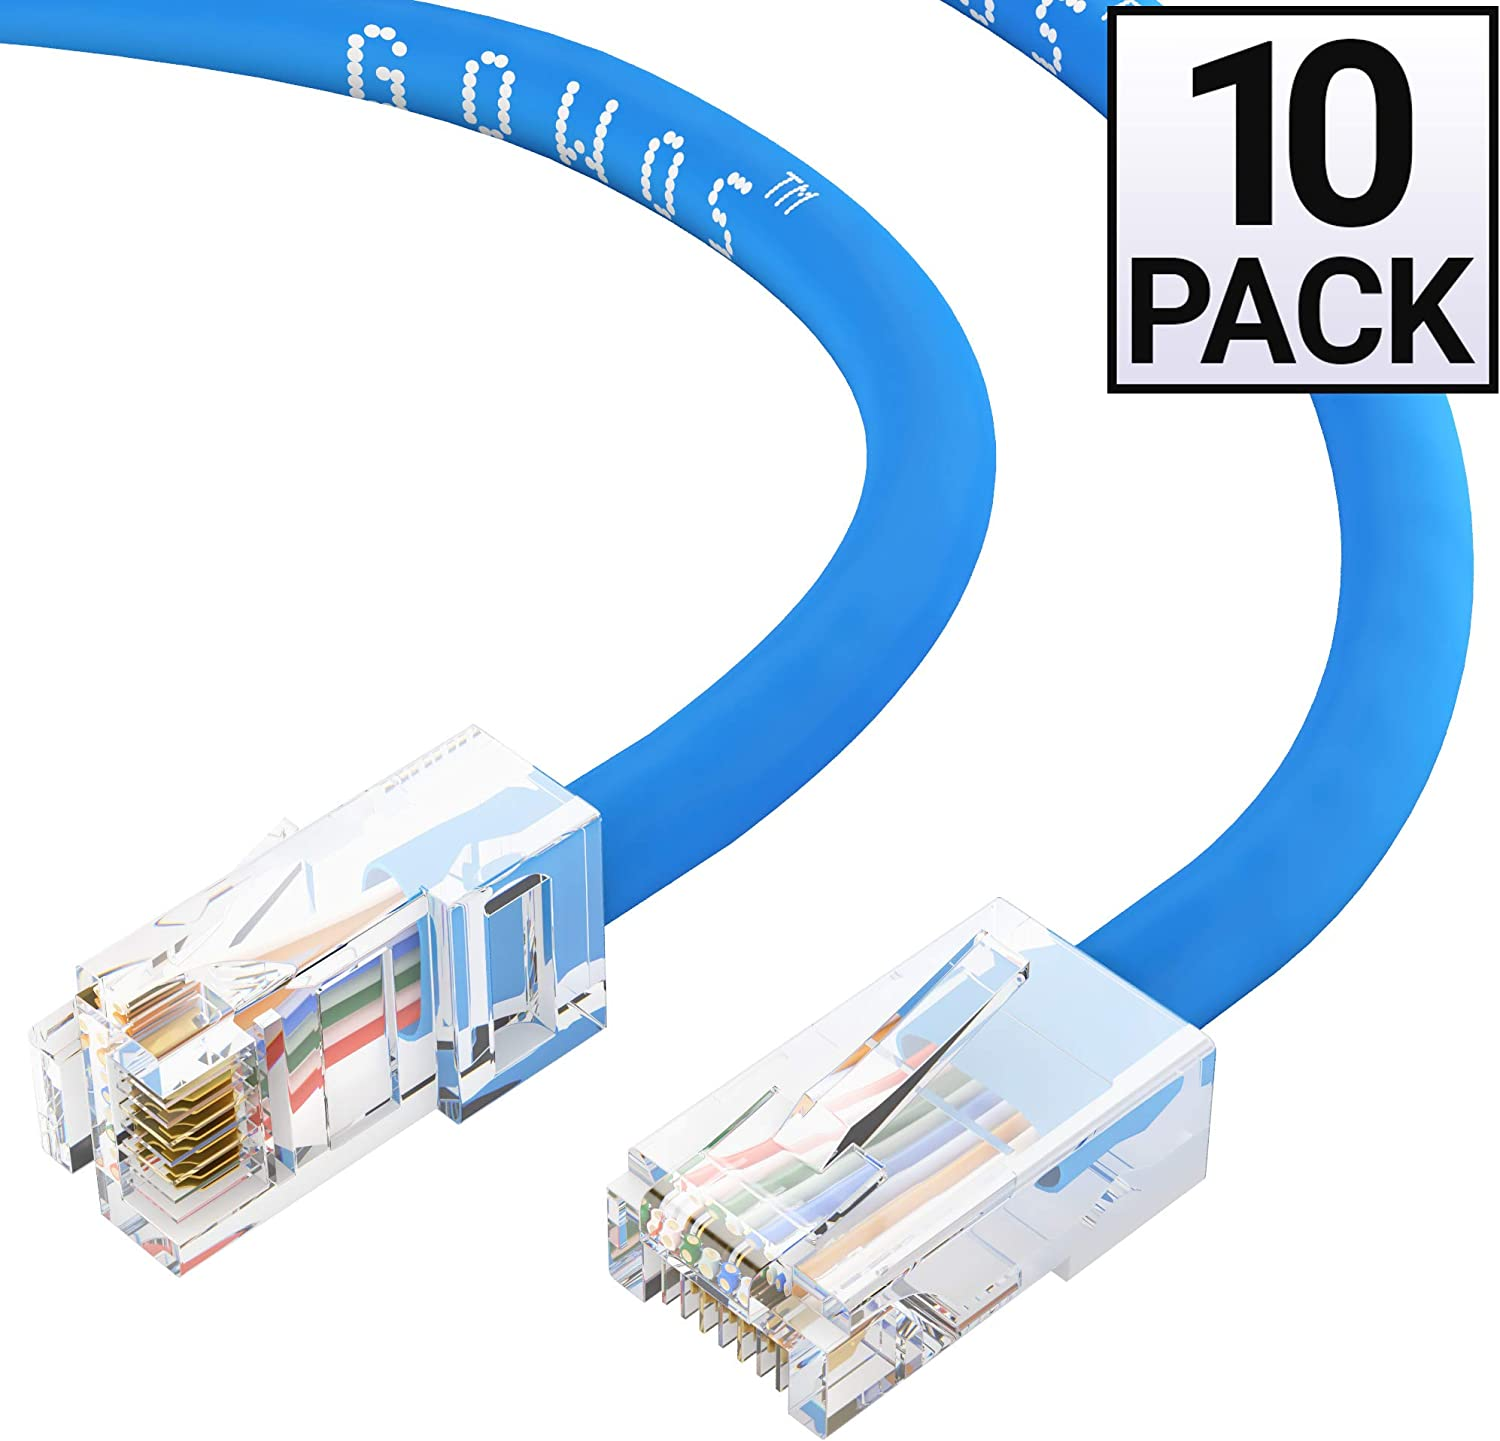 UTP 20 Feet - Gray Cat5e Ethernet Cable RJ45 10Gbps High Speed LAN Internet Patch Cord Computer Network Cable with Bootless Connector GOWOS 20-Pack Available in 28 Lengths and 10 Colors